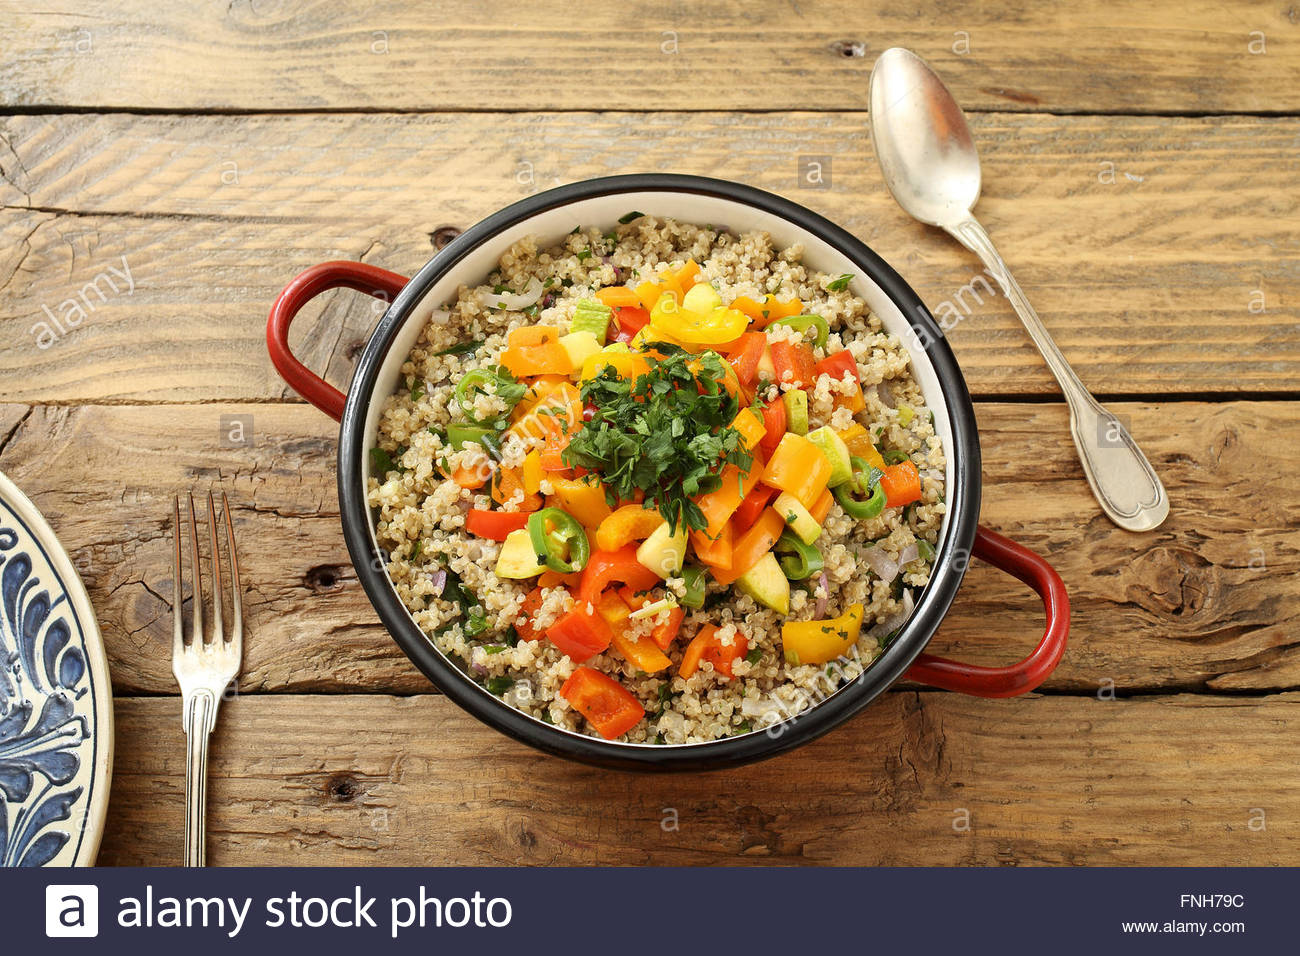 Kitchen table top view - Stock Photo Top View Vegan Quinoa Salad In Metal Pan On Rustic Kitchen Table Background